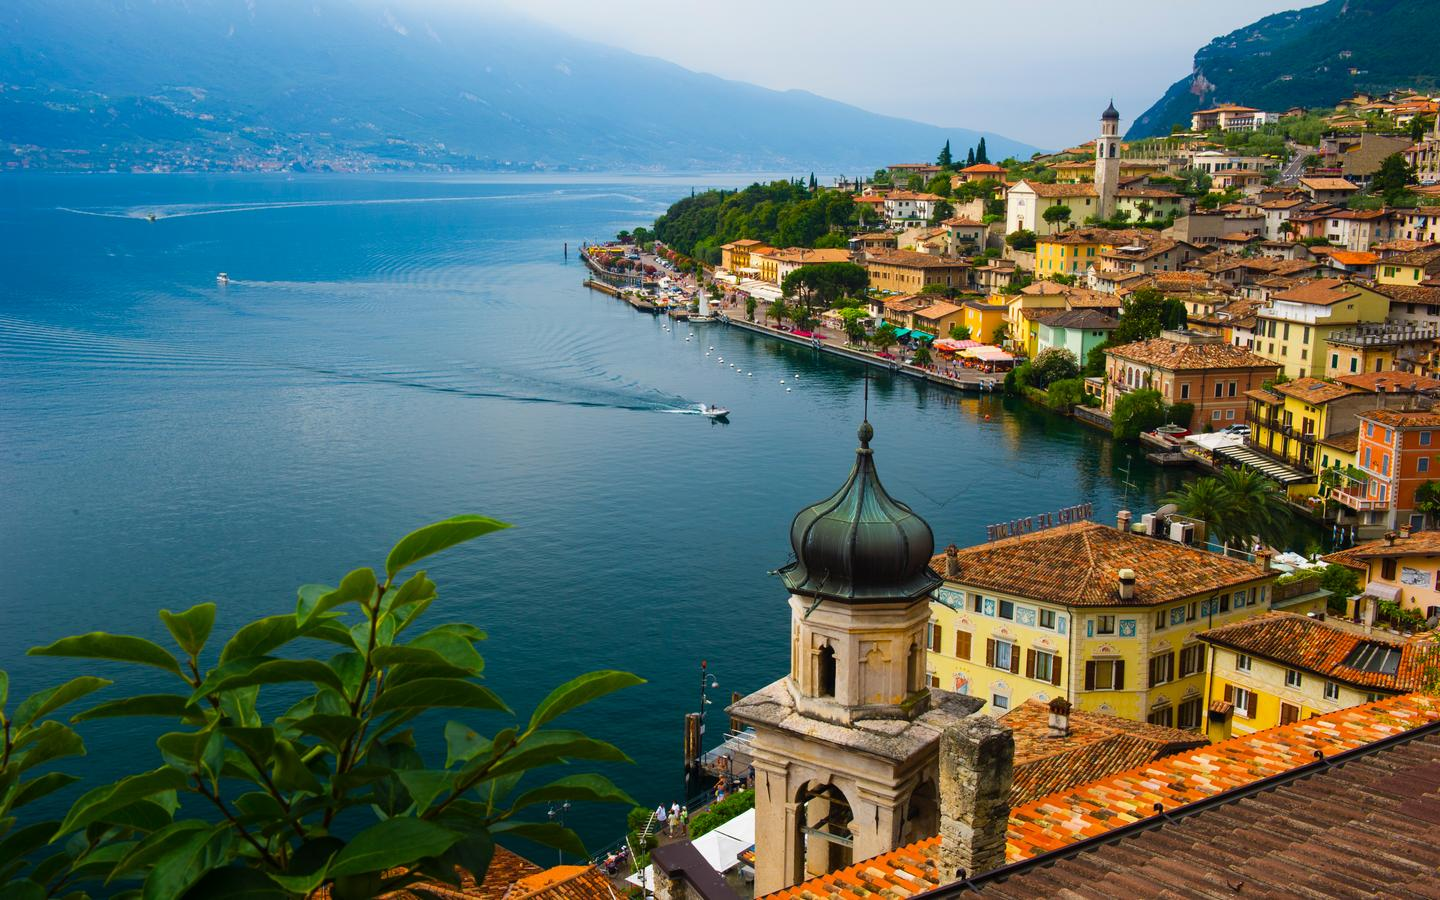 Hotels in Limone sul Garda